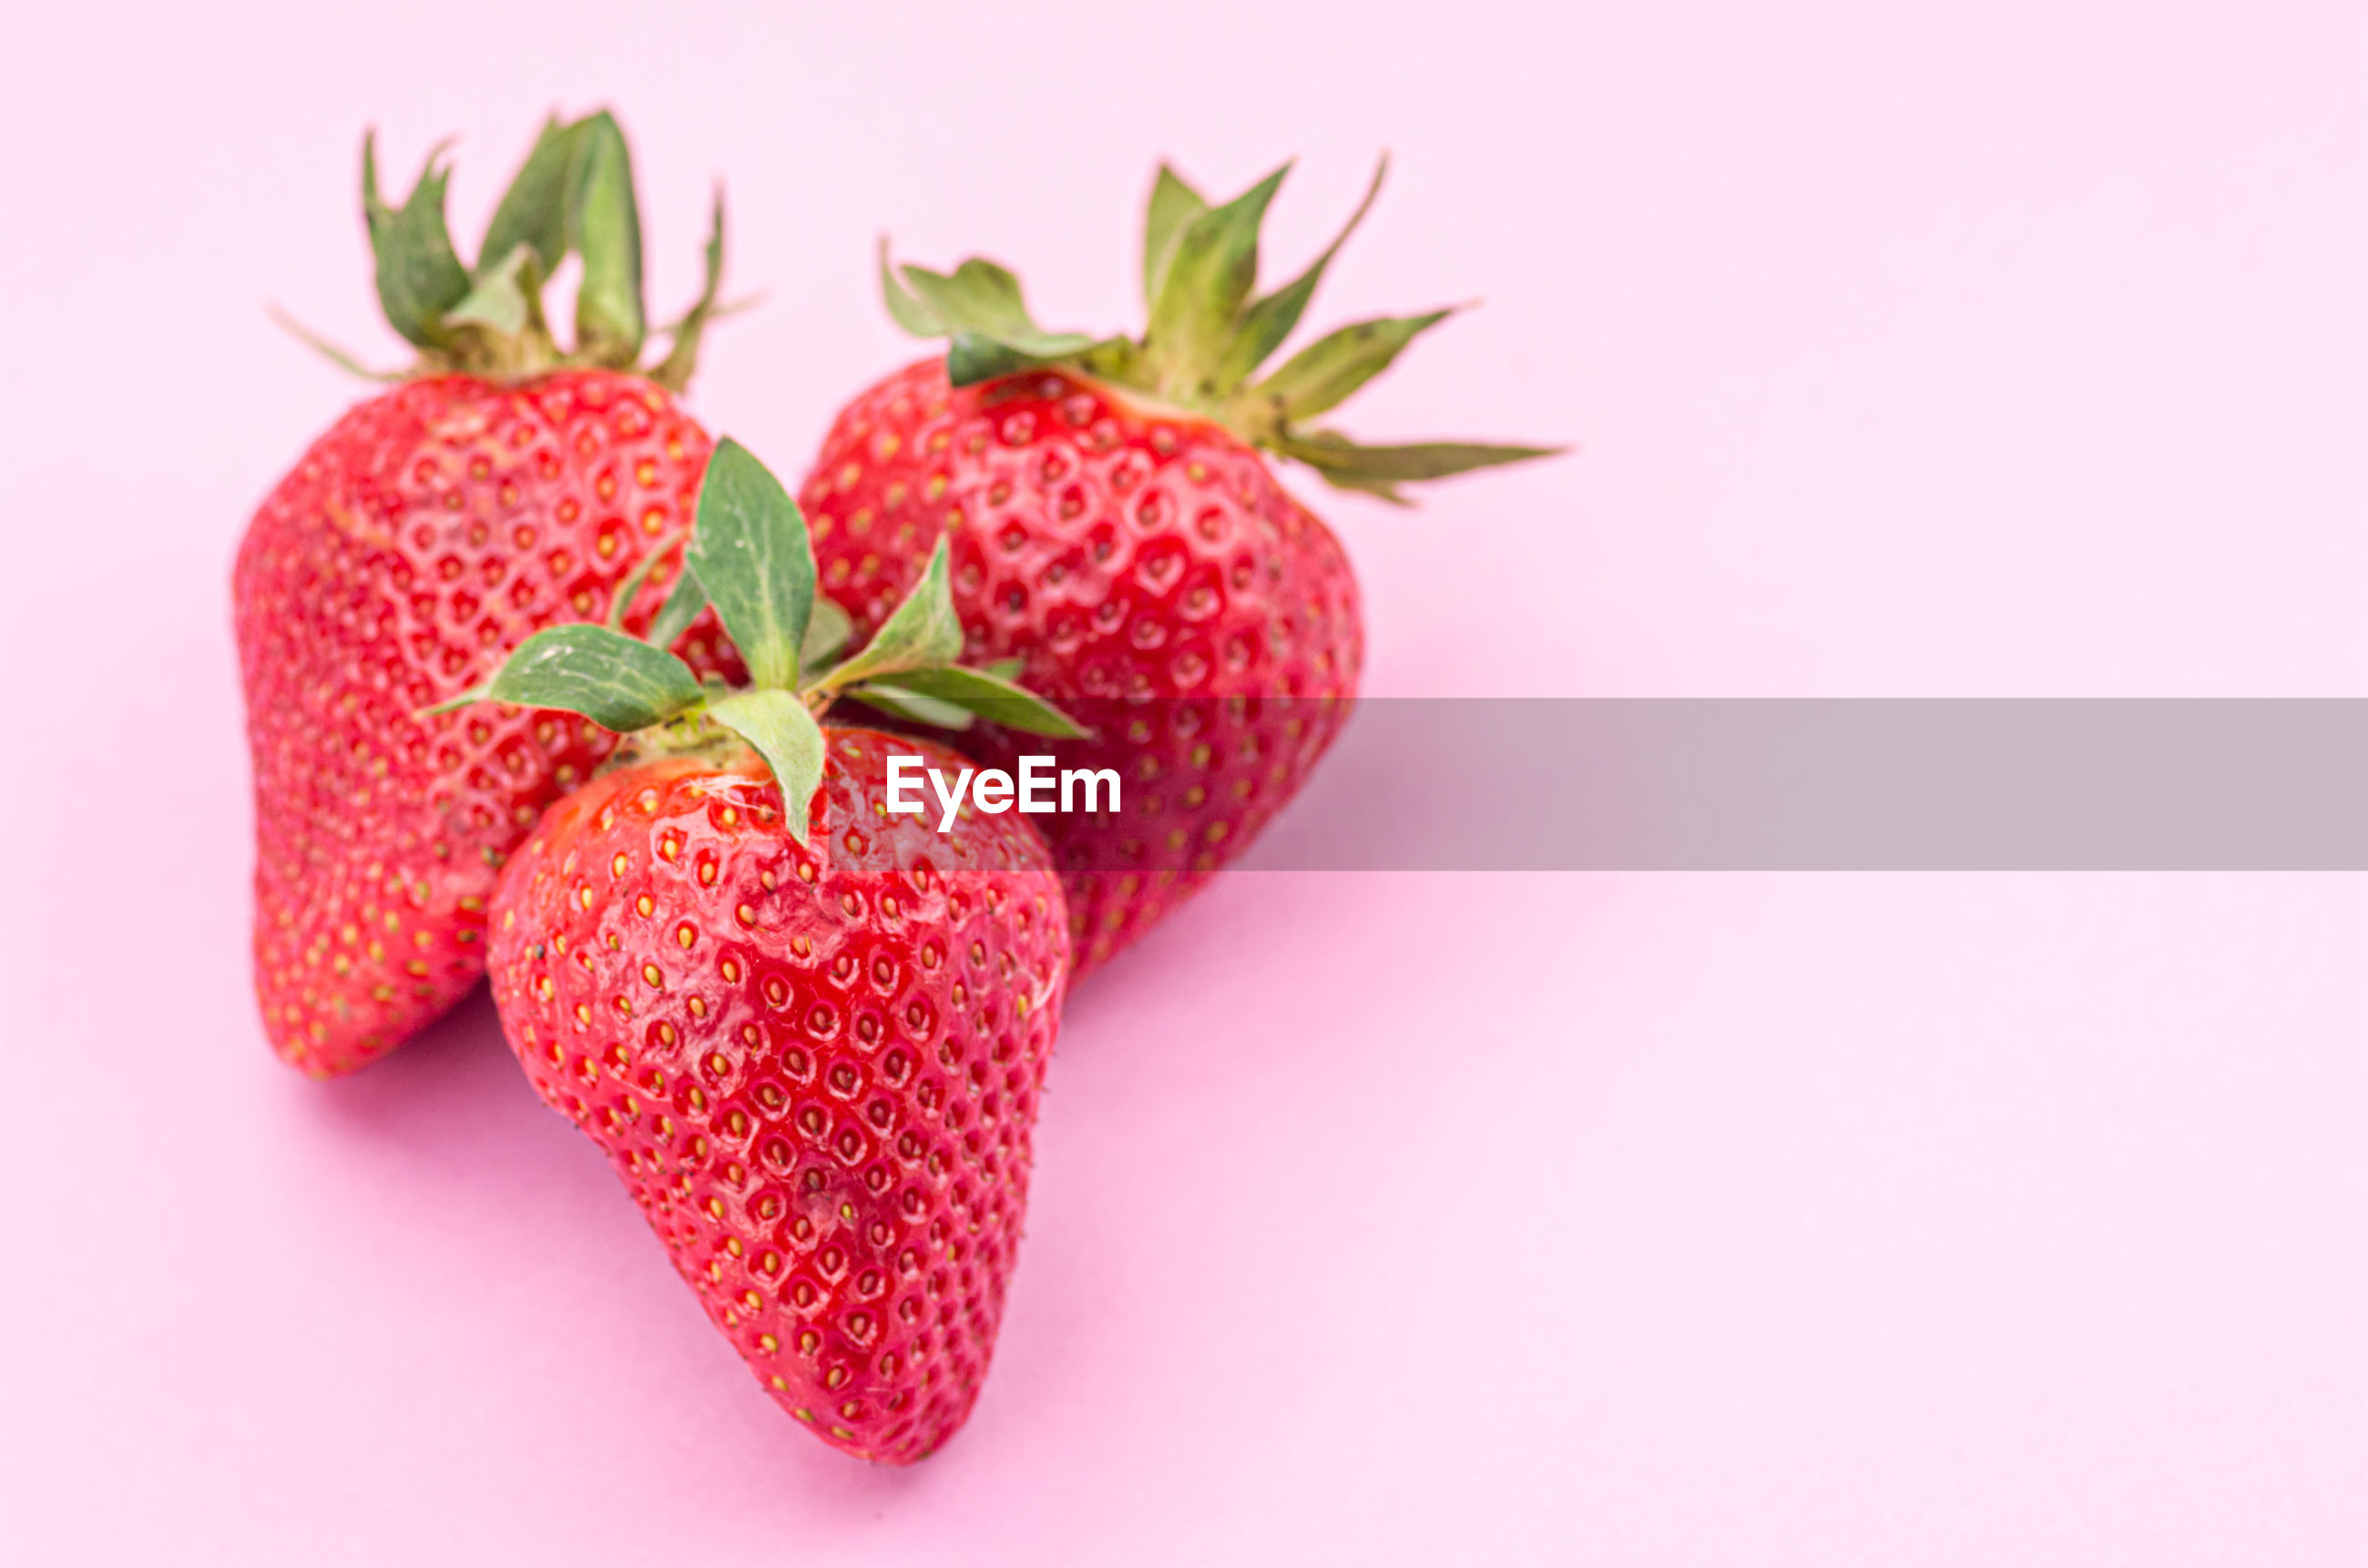 Fresh organic ripe strawberries on a pink surface close up